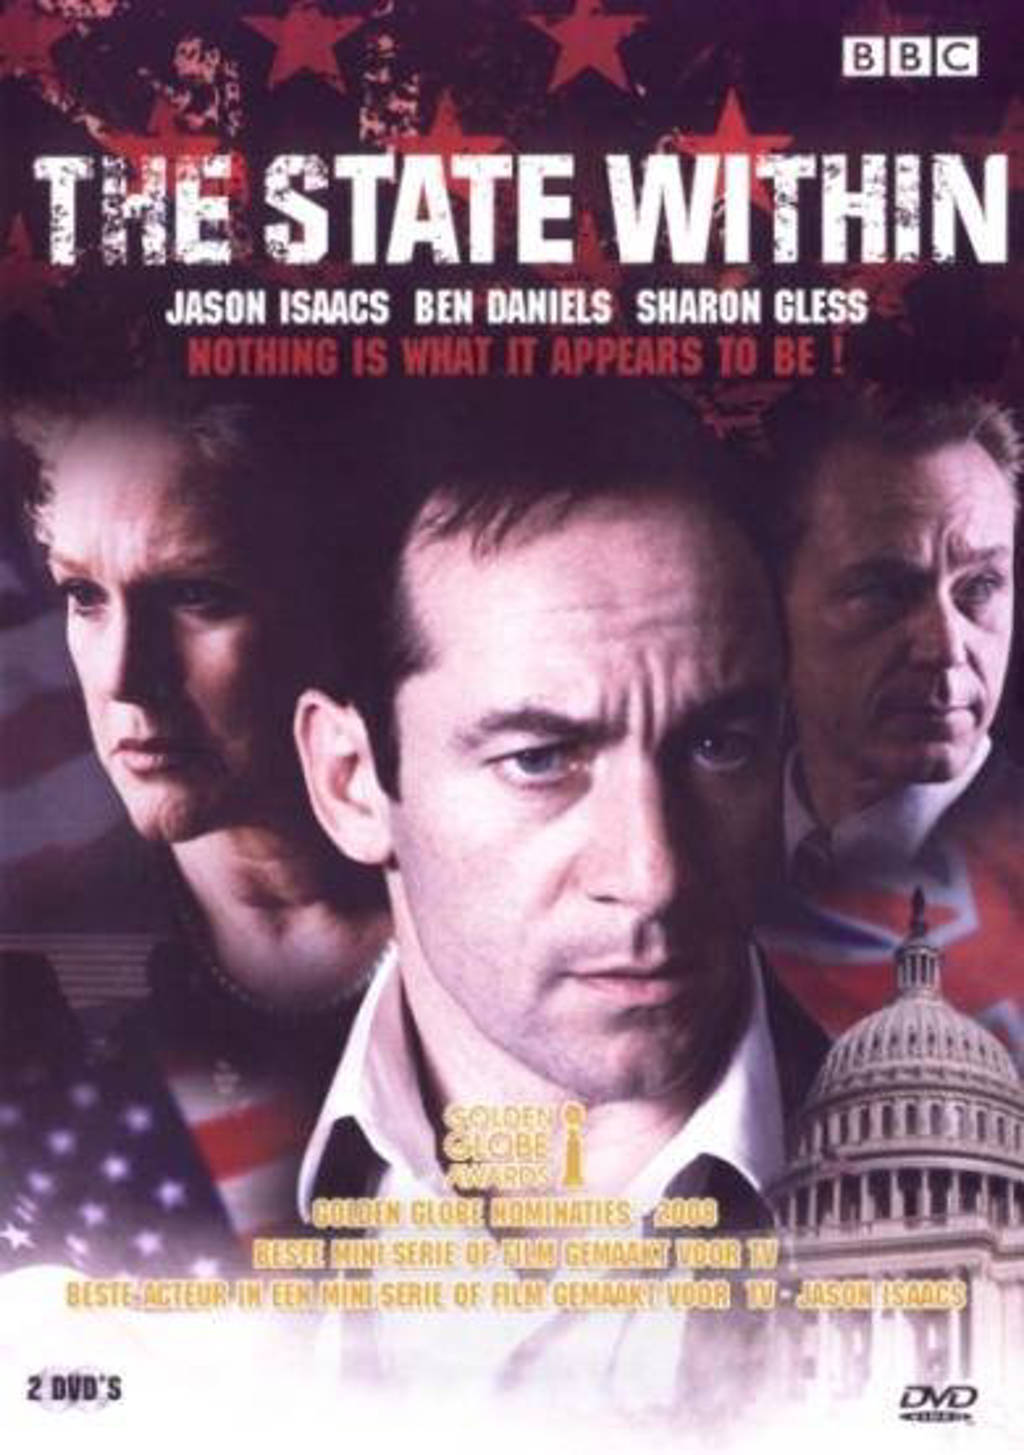 State within (DVD)